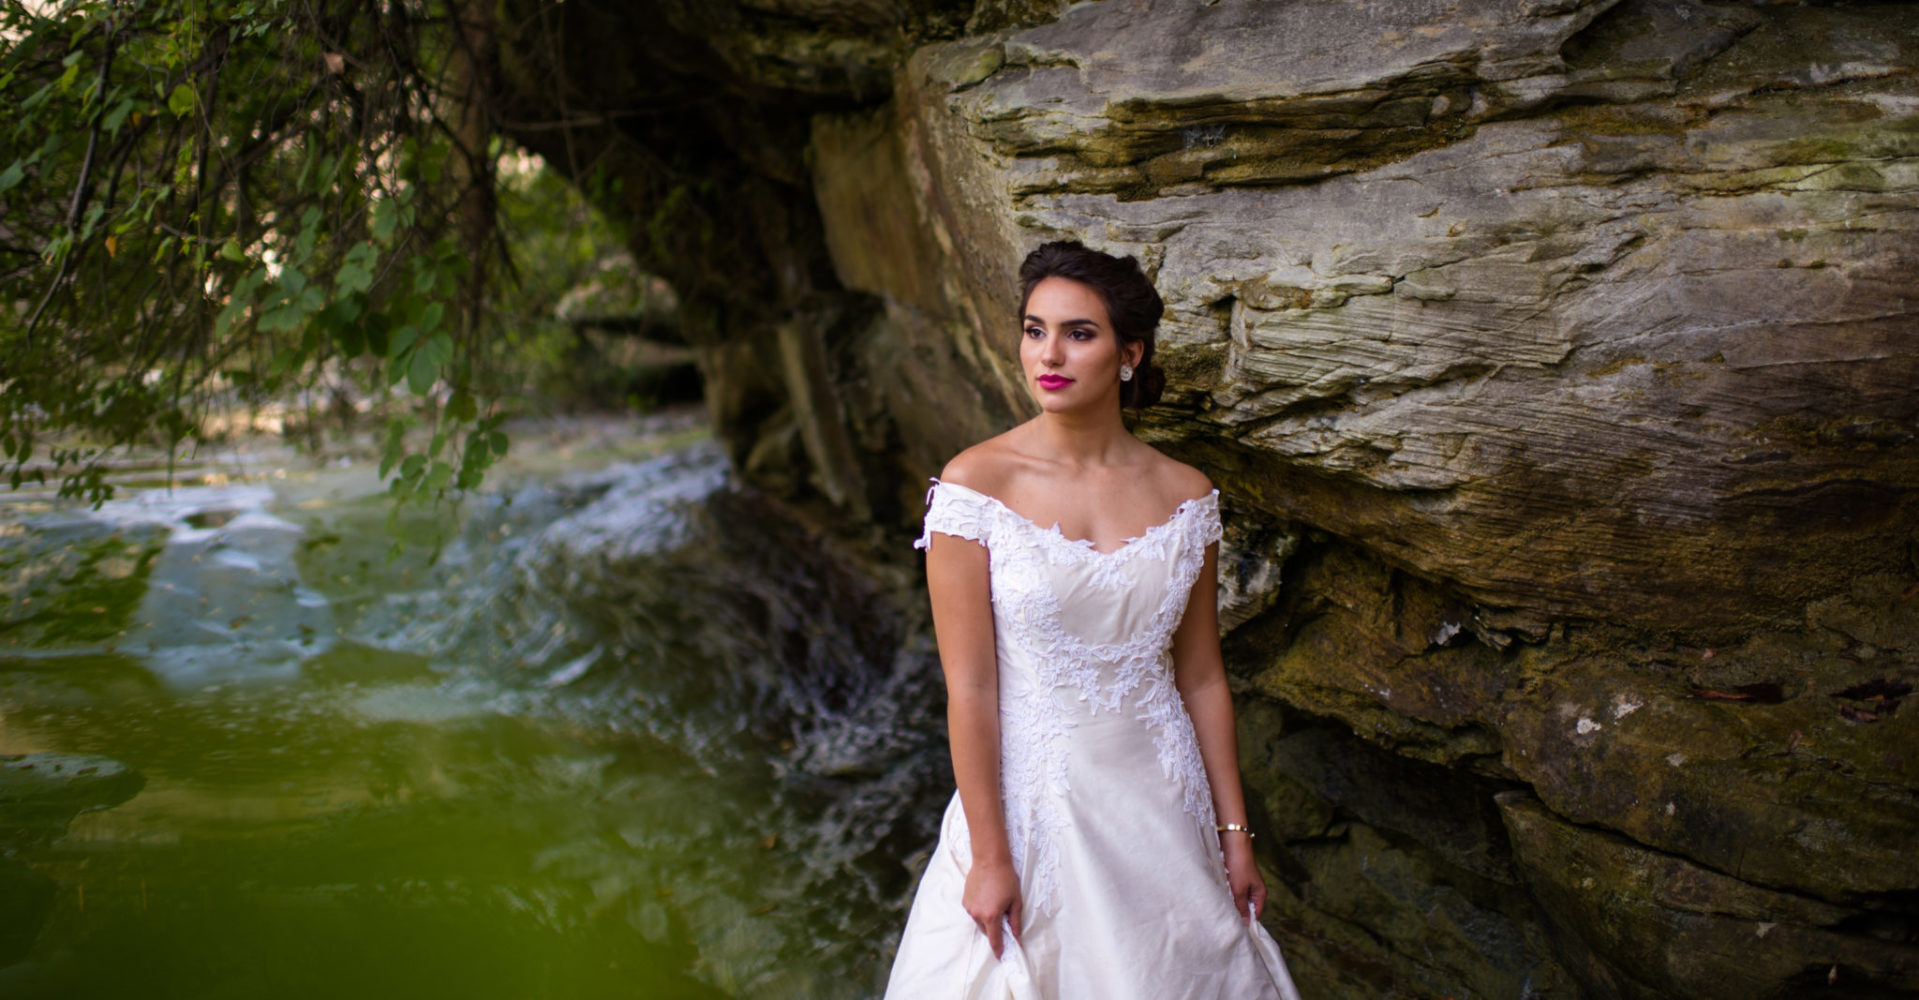 Outdoor Wedding Photography Bride by Cliffs Photo